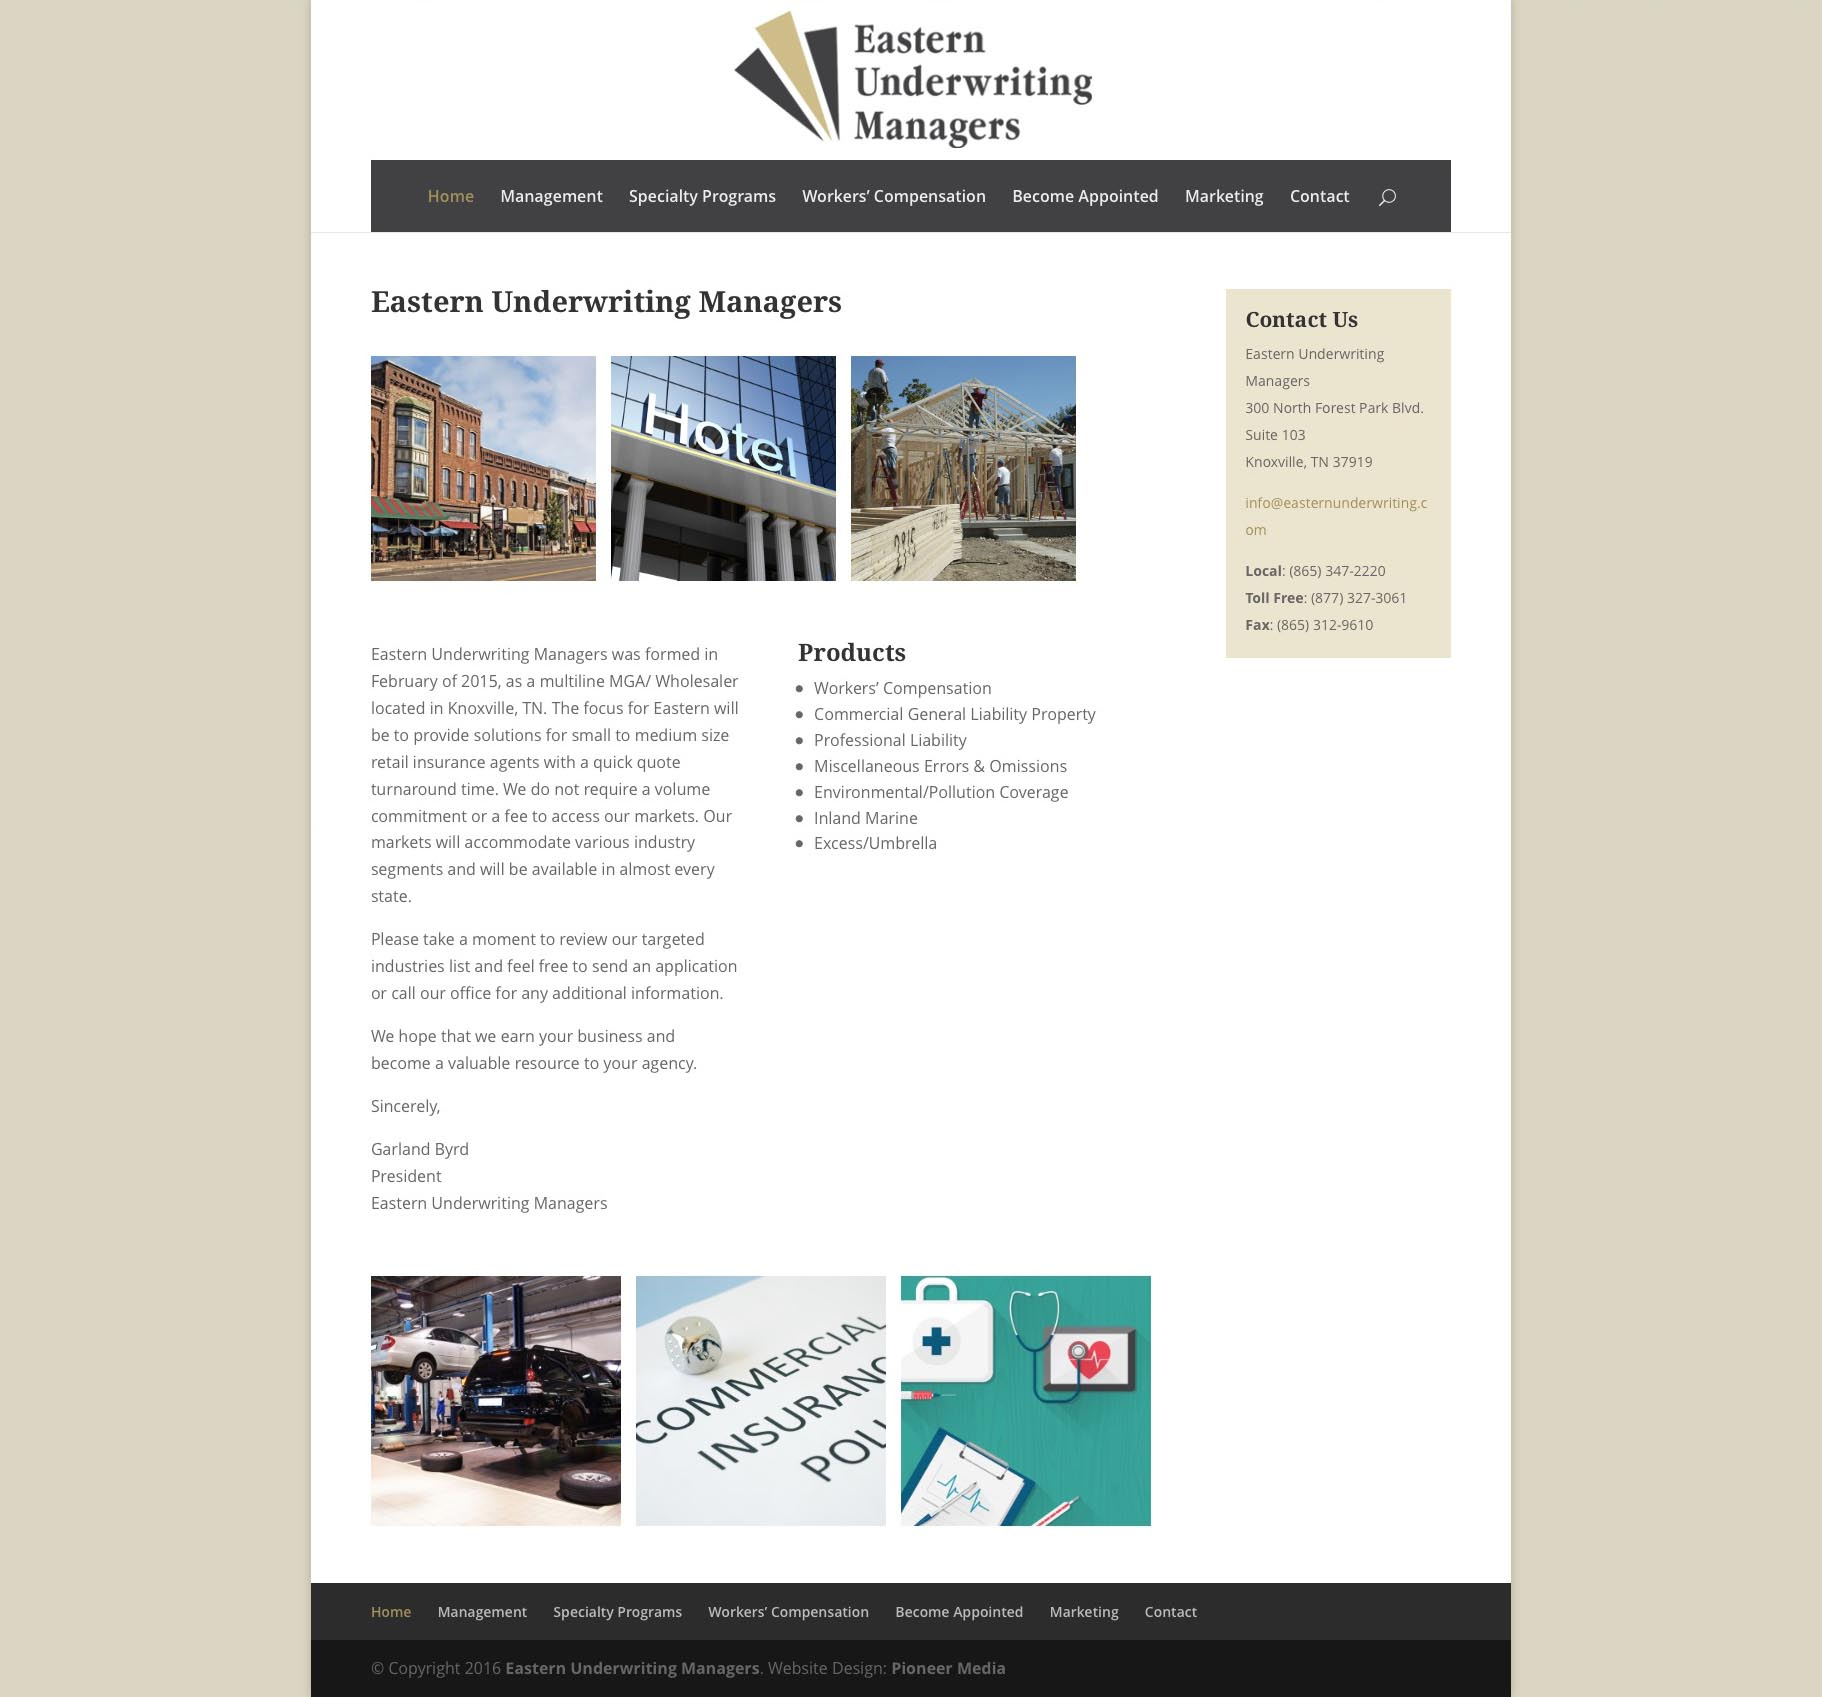 Eastern Underwriting Managers Website Design